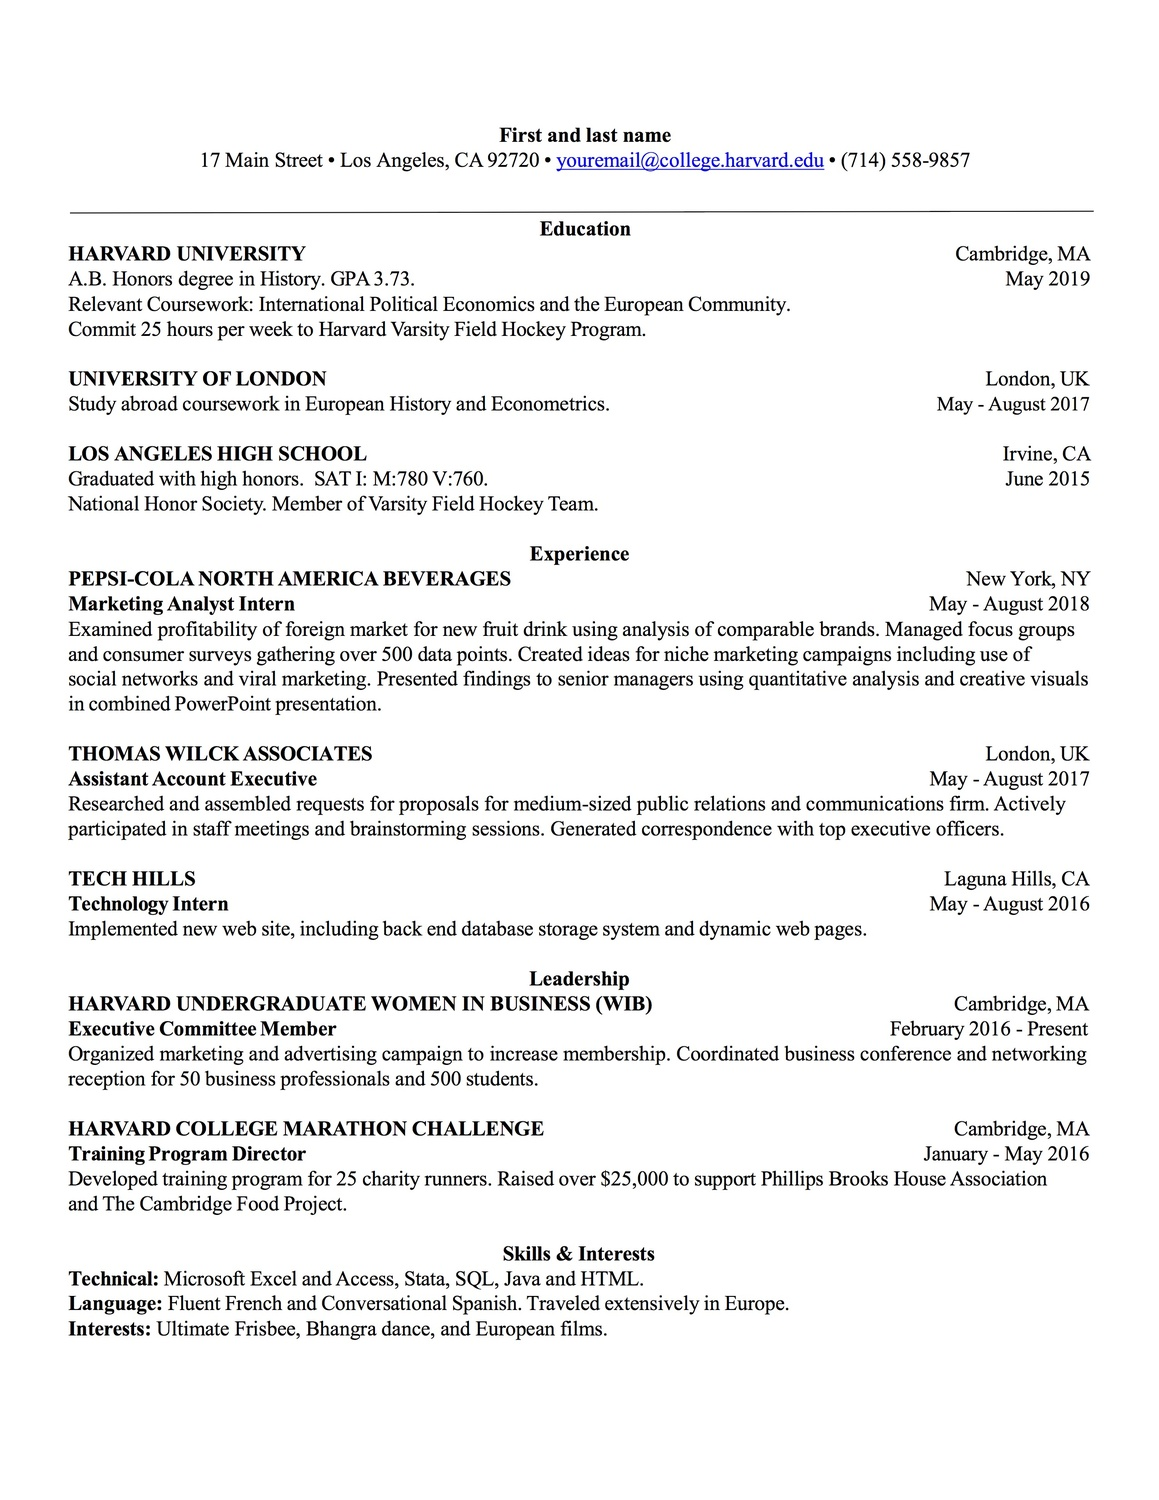 OCS Sample Resume